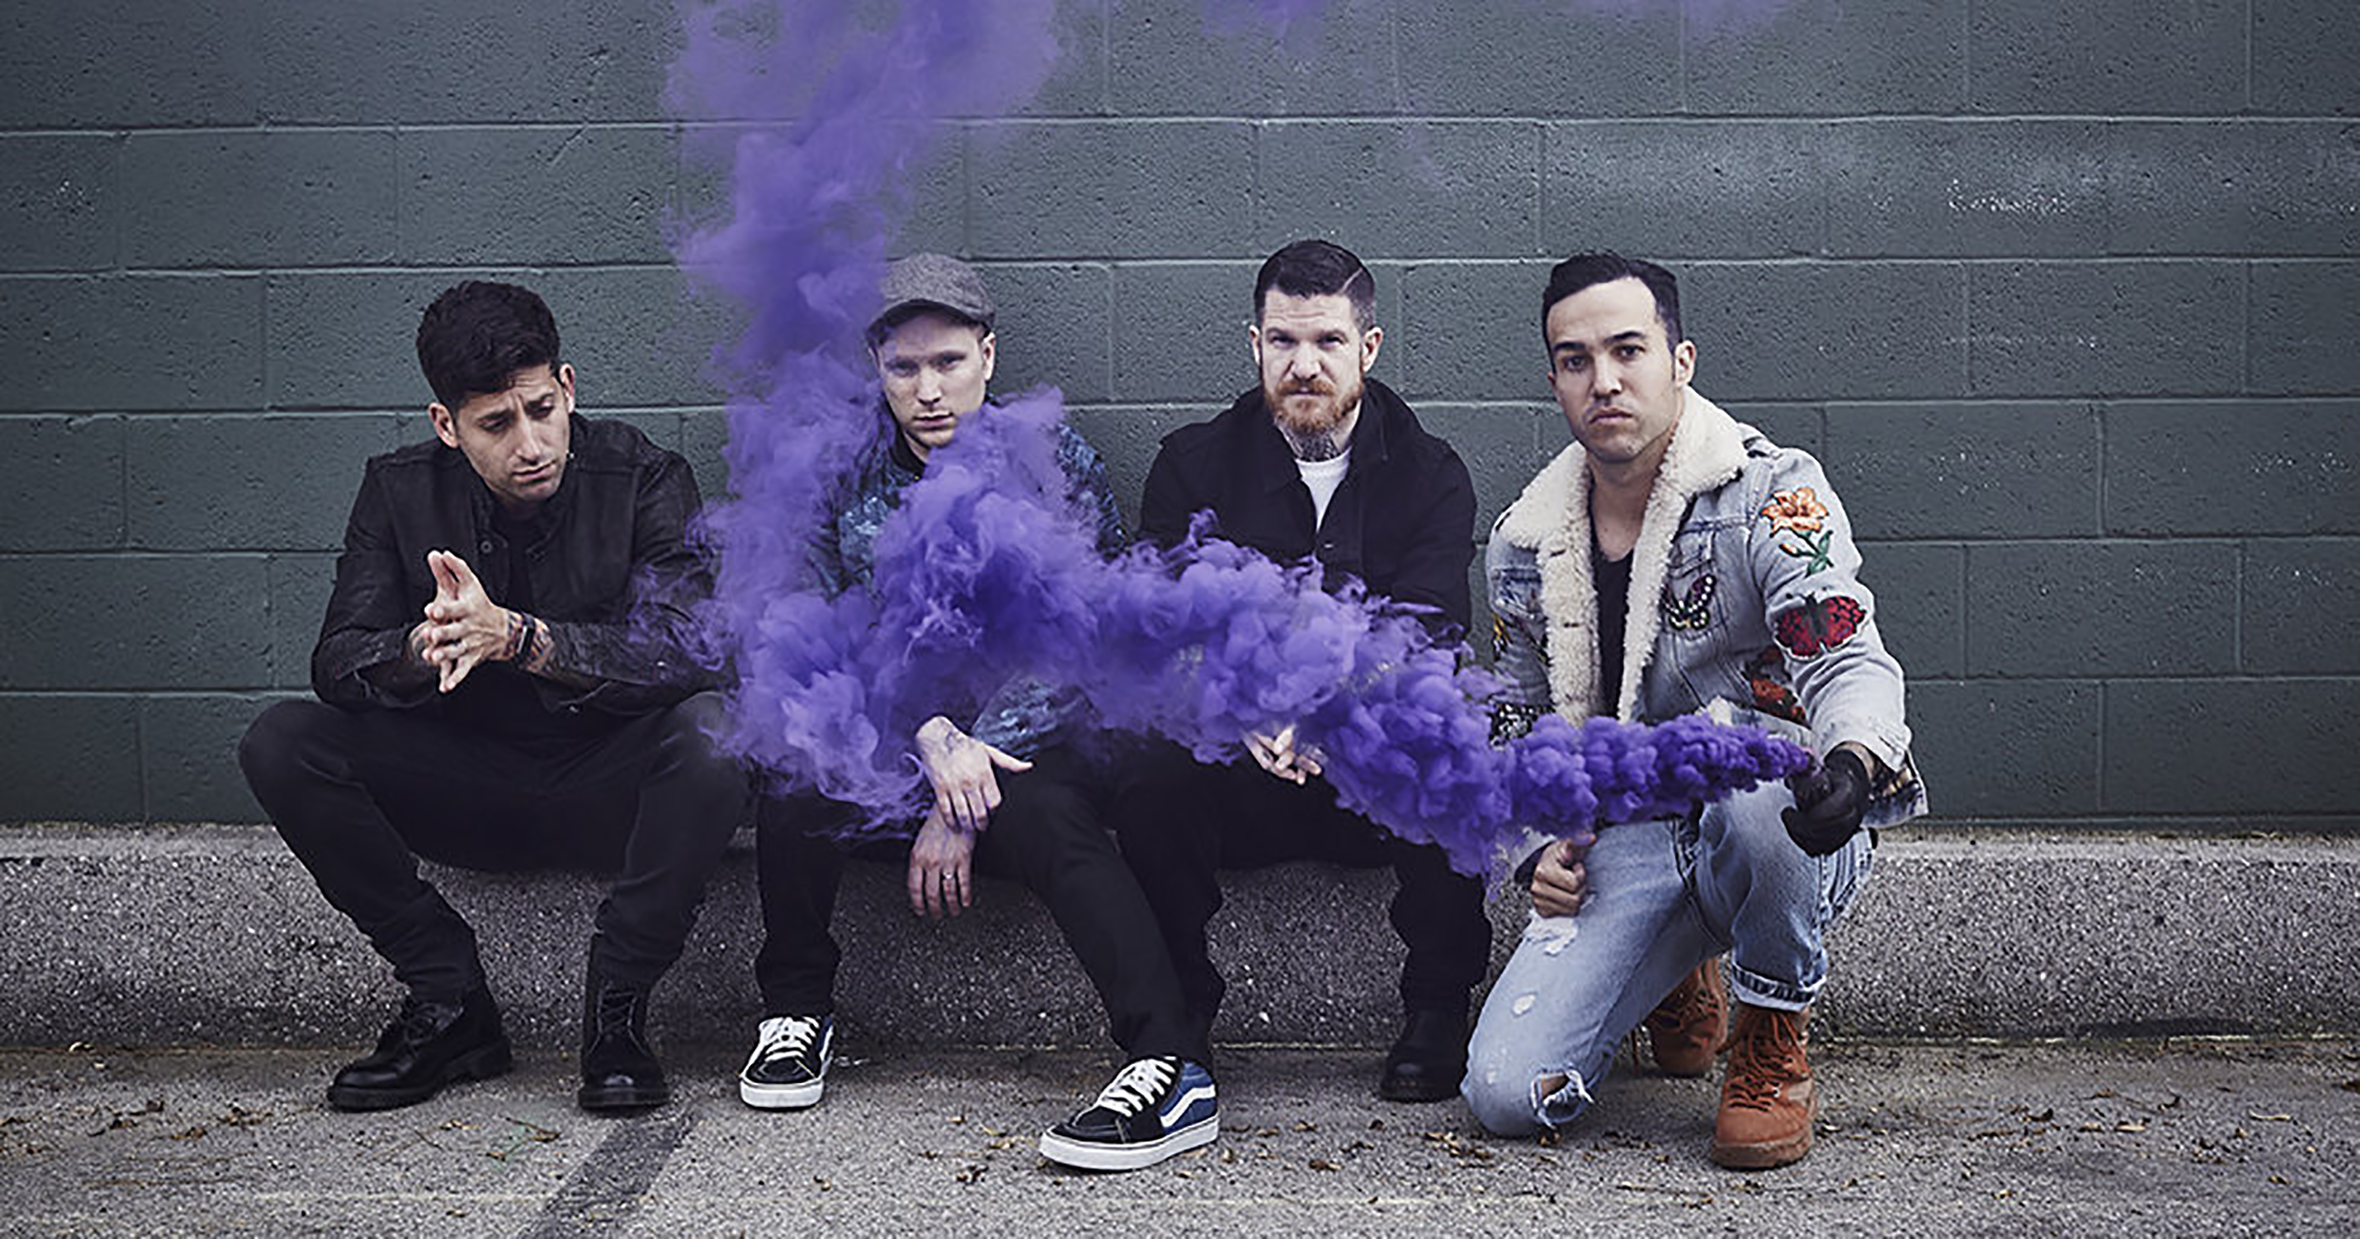 A picture of the Fall Out Boy Band